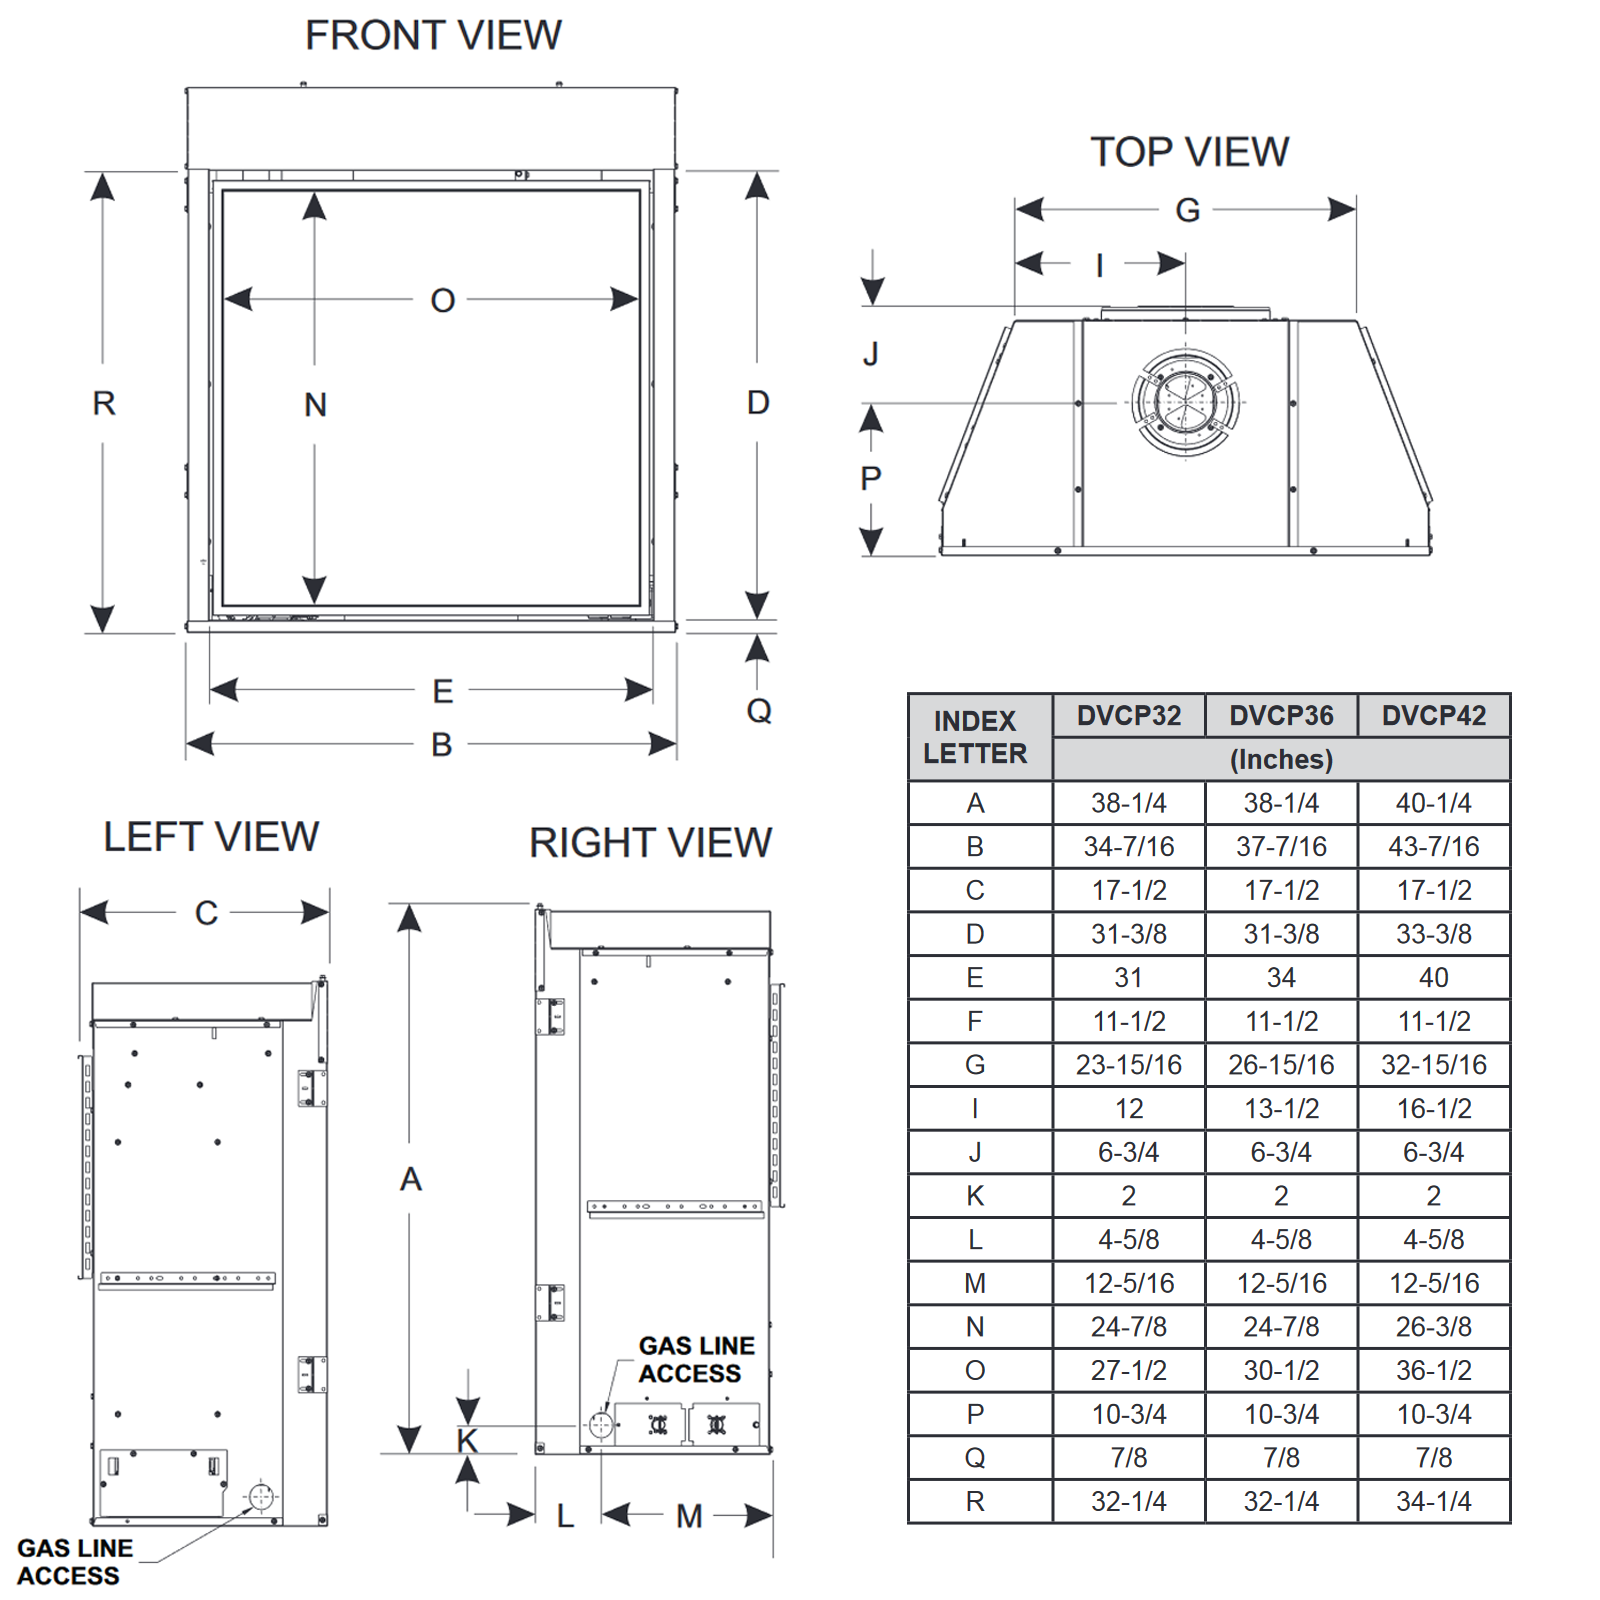 DVCP32 Technical Drawing 1